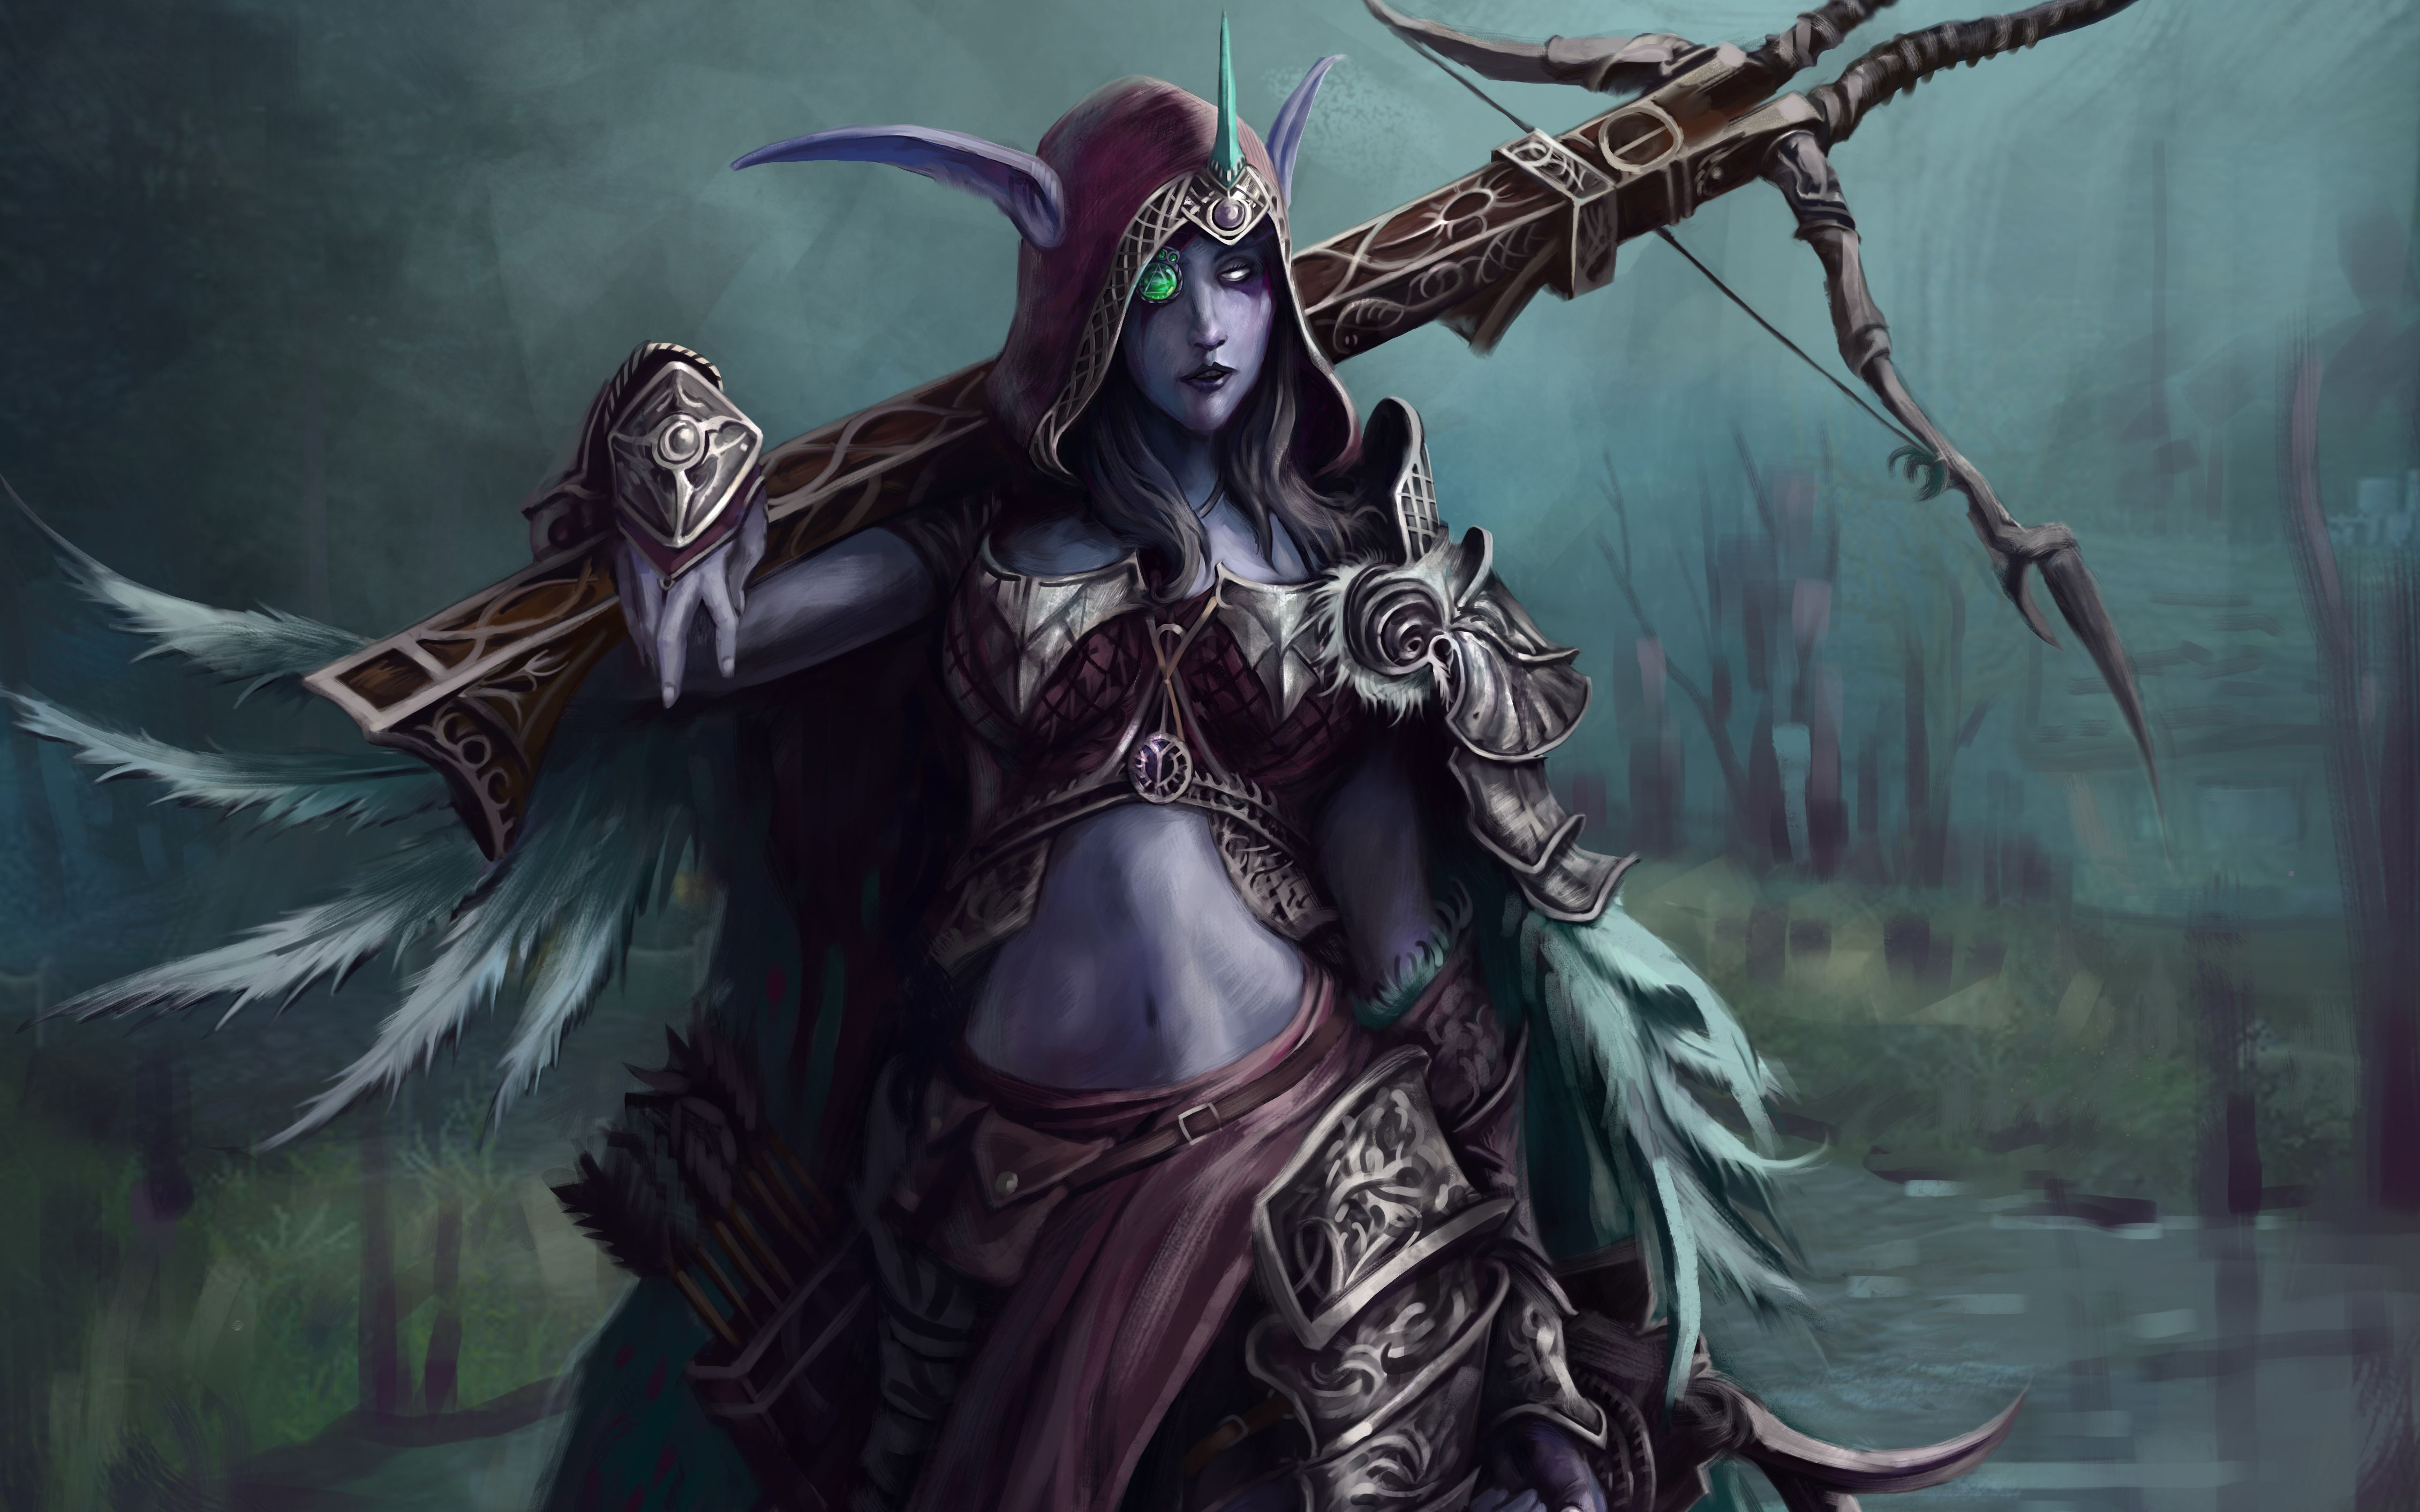 4K World of Warcraft Wallpapers - Top Free 4K World of ...